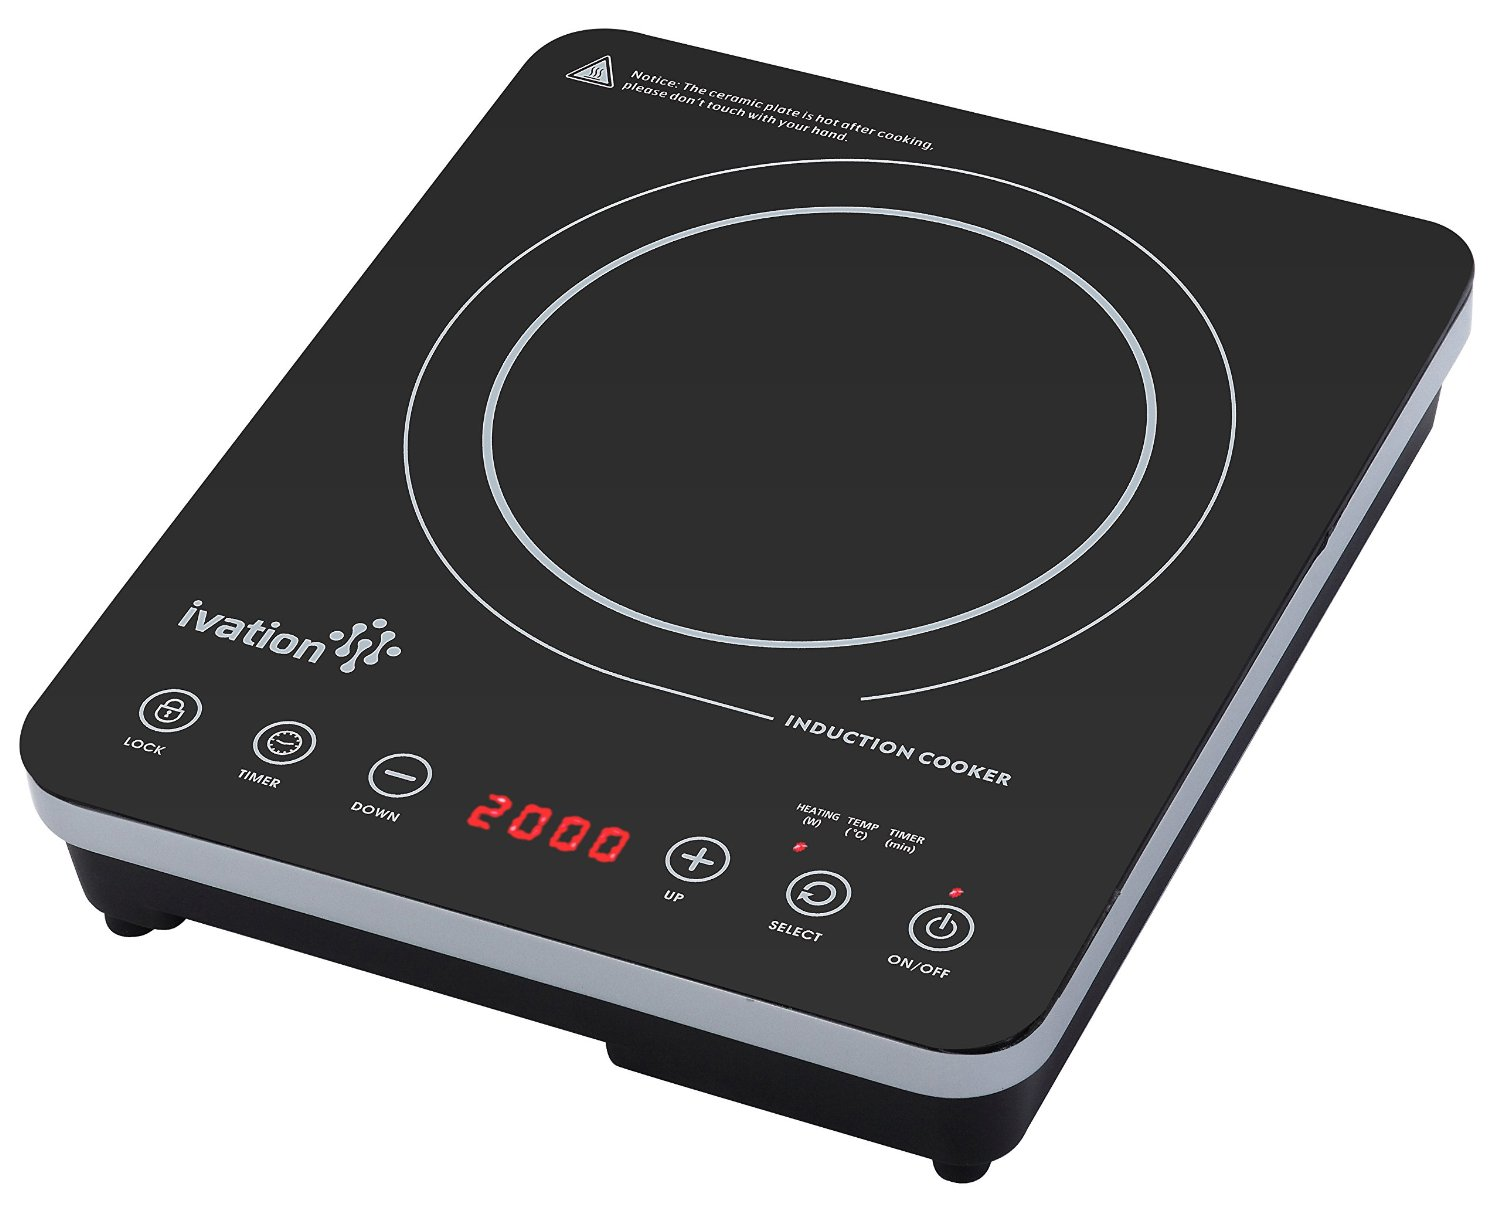 Portable 1800 Watt Induction Countertop Cooktop Burner by Ivation ...